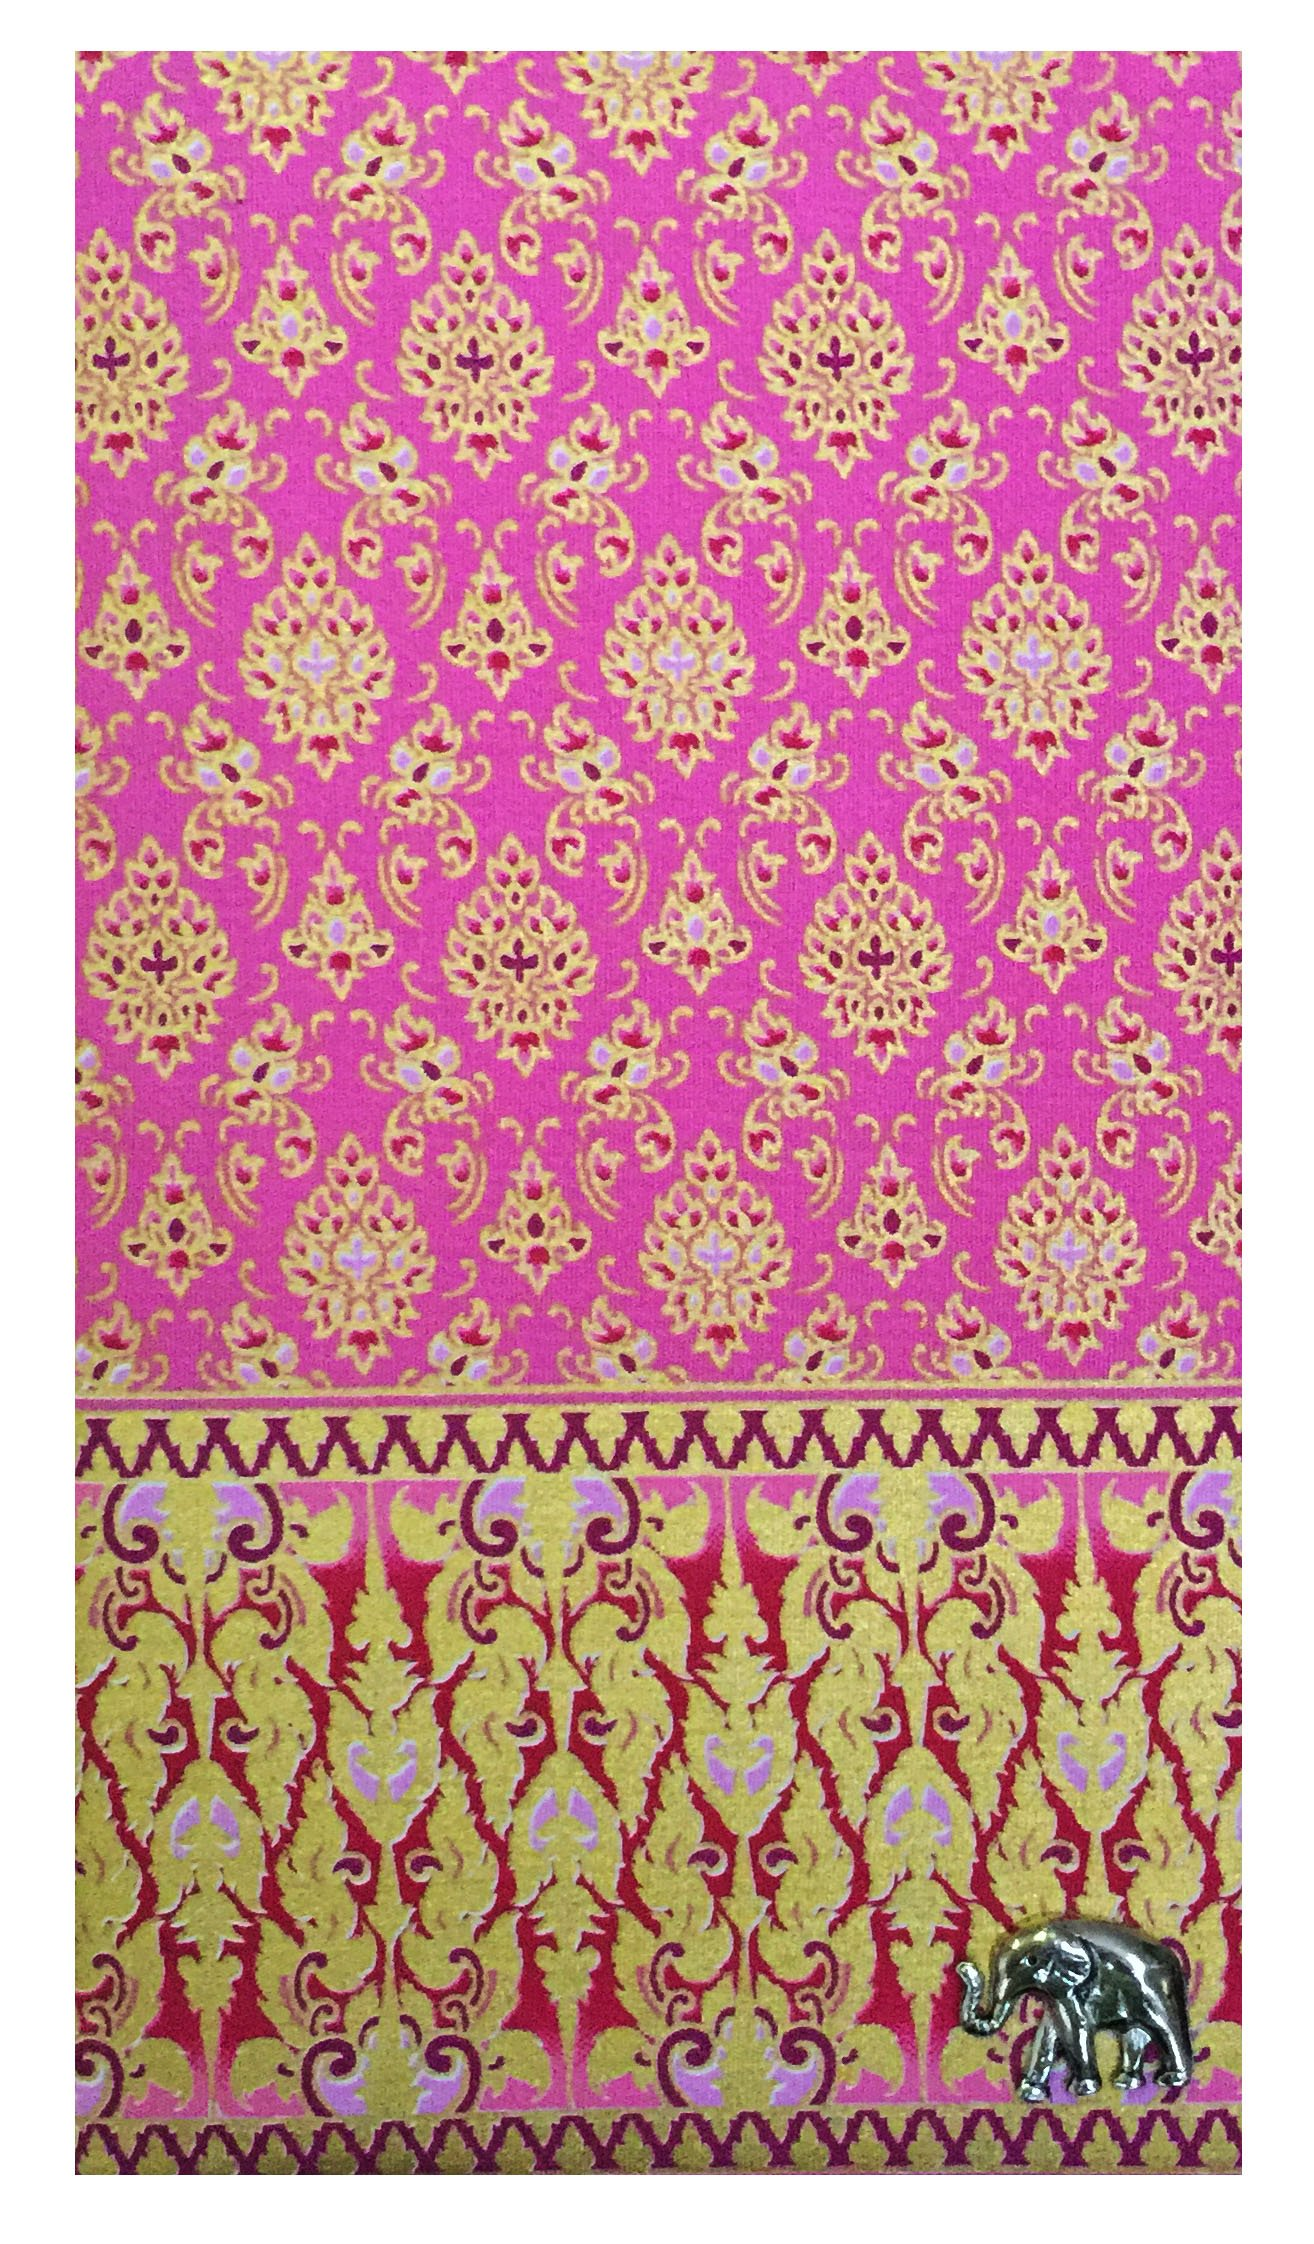 Pink & Gold Thai Patterned Guest Check Presenter, Check Holder for Restaurant, Guest Check Book Holder, Waitstaff Organizer, Restaurant Server Book (With Plastic Cover)